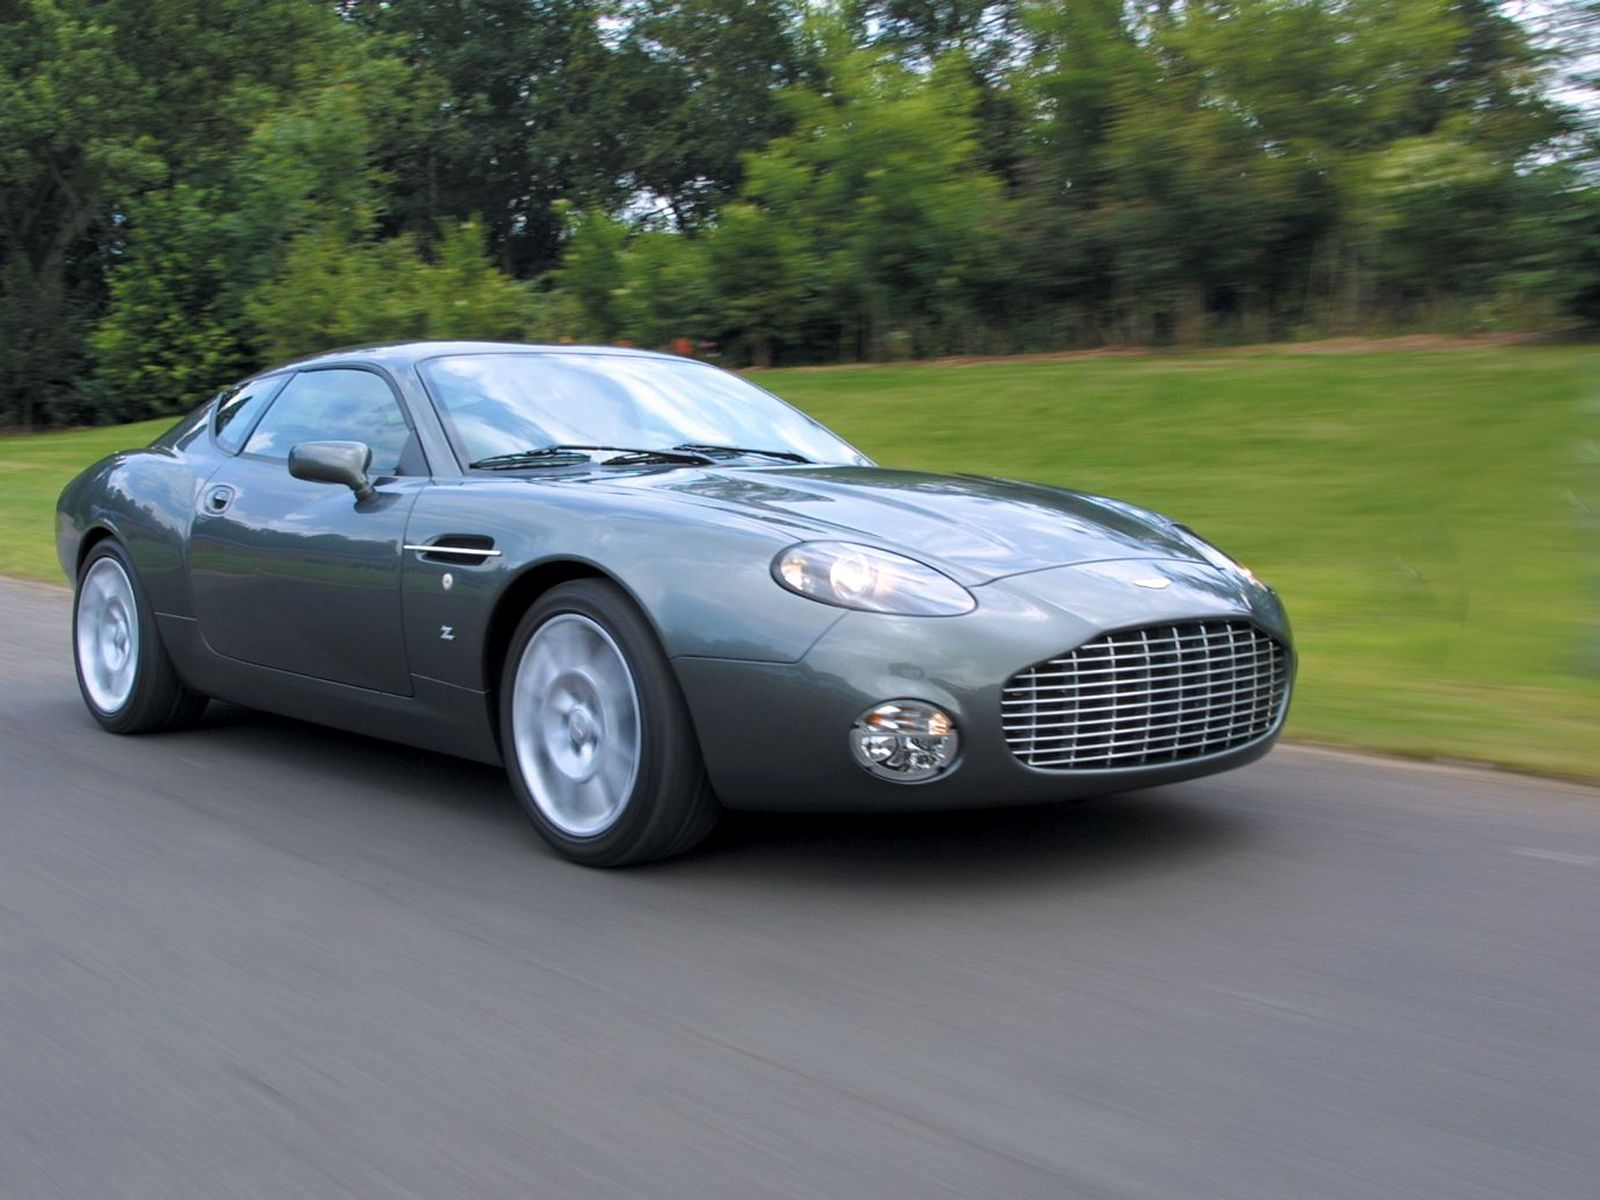 Aston Martin Db7 Cost New